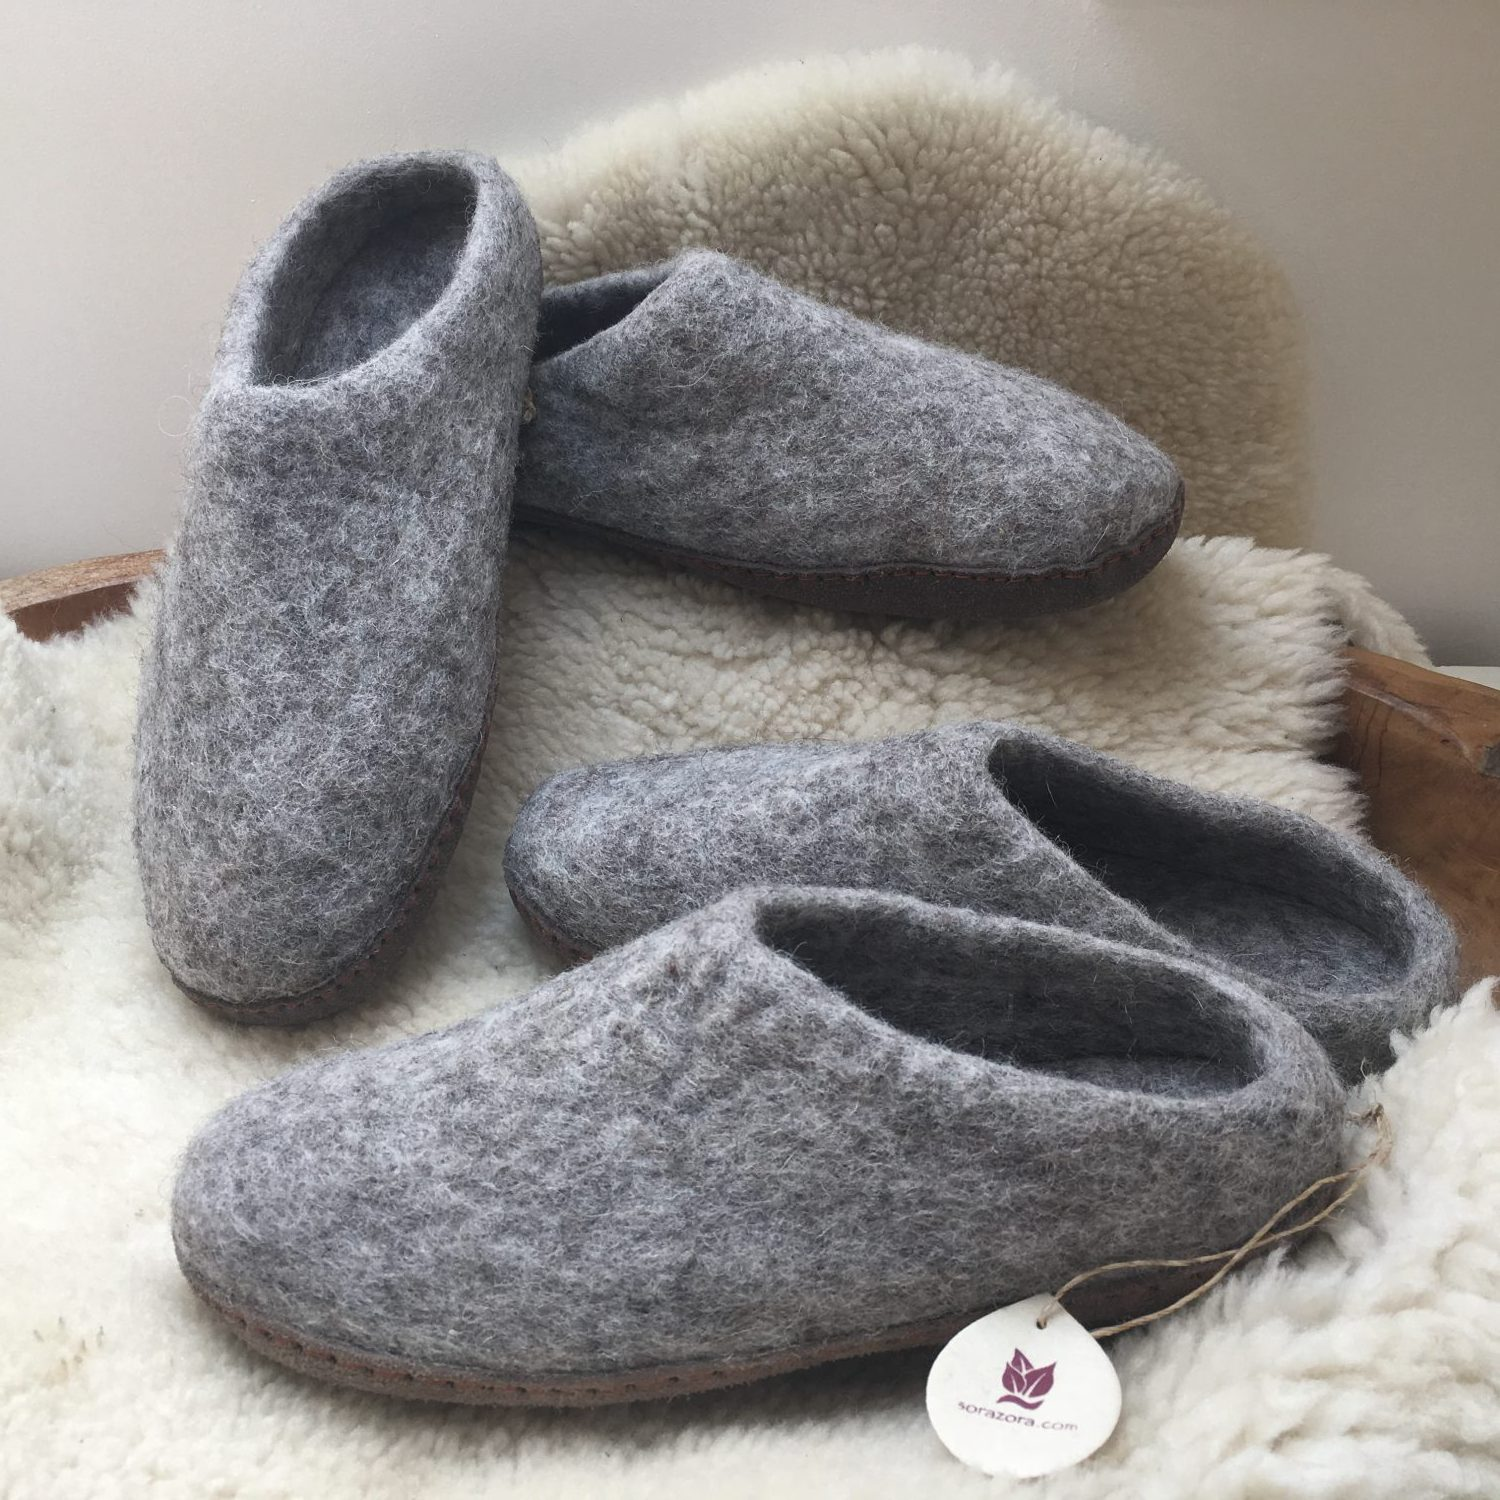 Felted Toasty Slippers